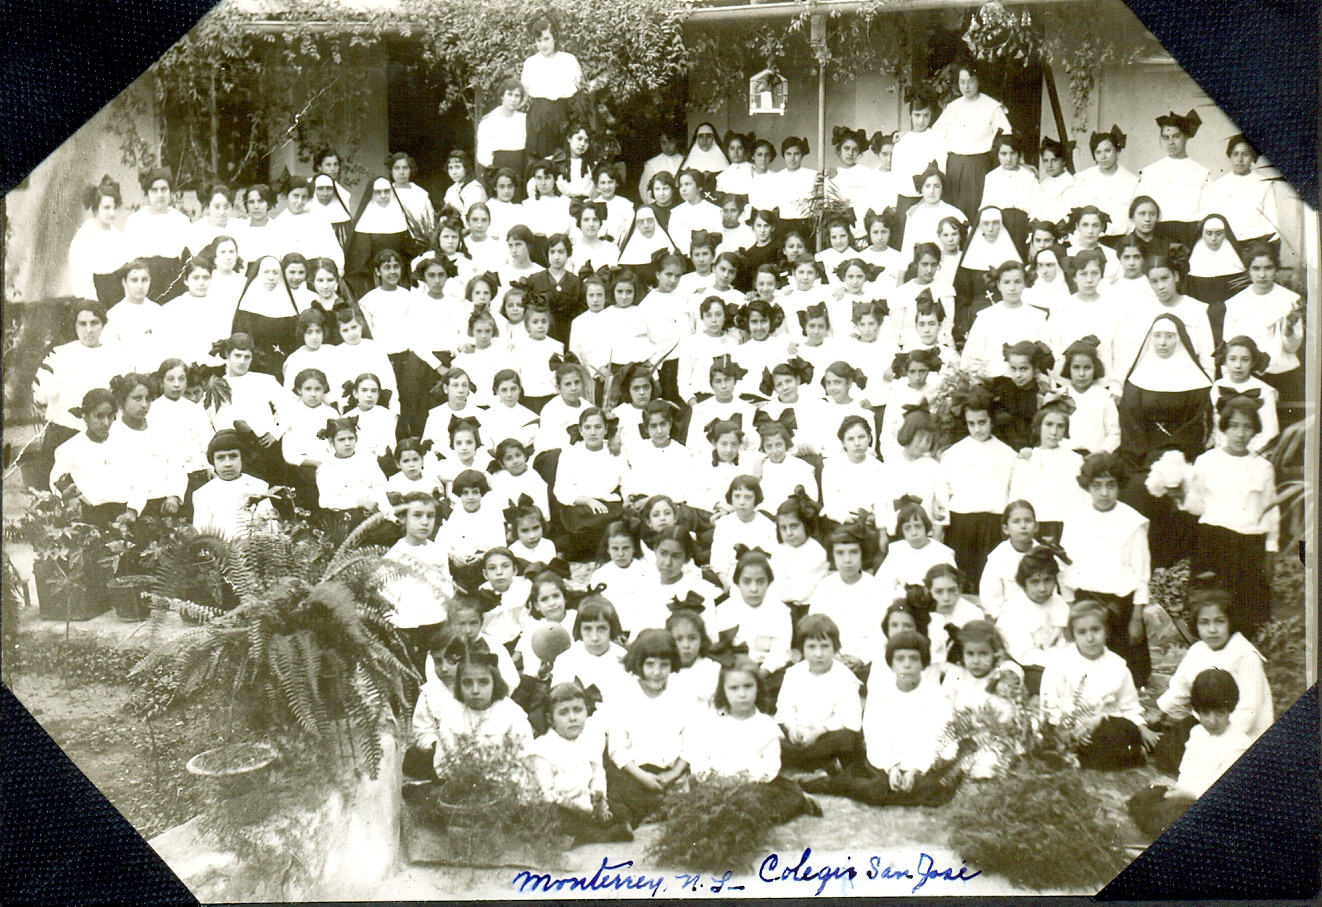 In the early 20th century, the Mexican government closed many of the Congregation's schools in Mexico and confiscated their property. The sisters taught in private homes or sought refuge in San Antonio.  Colegio San José in Monterrey did not suffer any disruption of classes or confiscation of property, however, and became a refuge for Sisters fleeing more troubled areas.